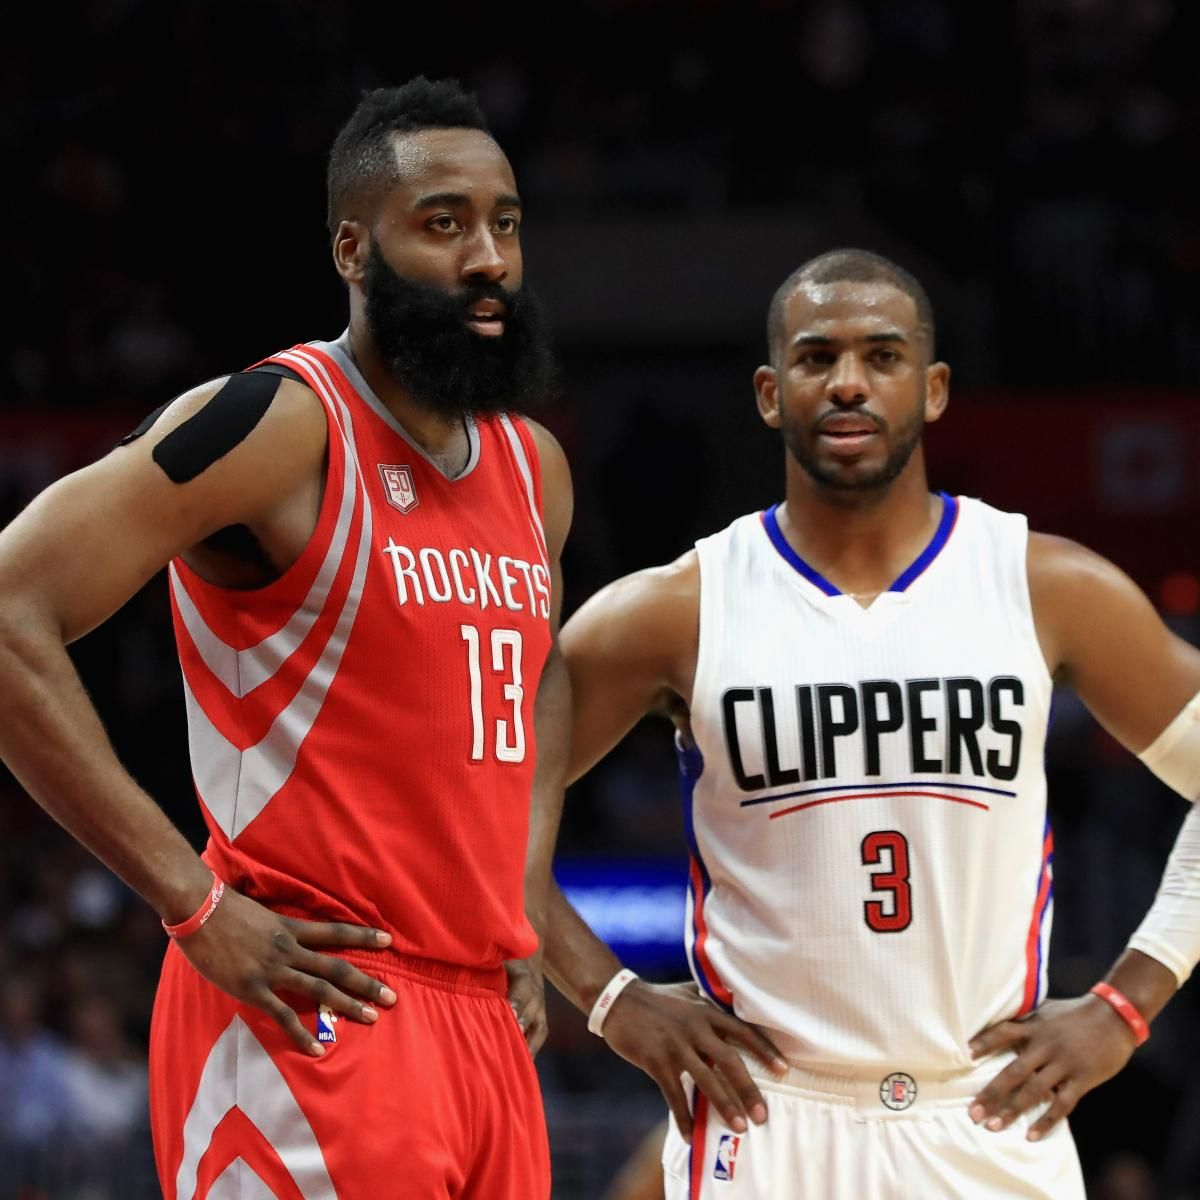 Forget Your Lame 'One Ball' Argument, Rockets Will Make Chris Paul Trade Work - Bleacher Report